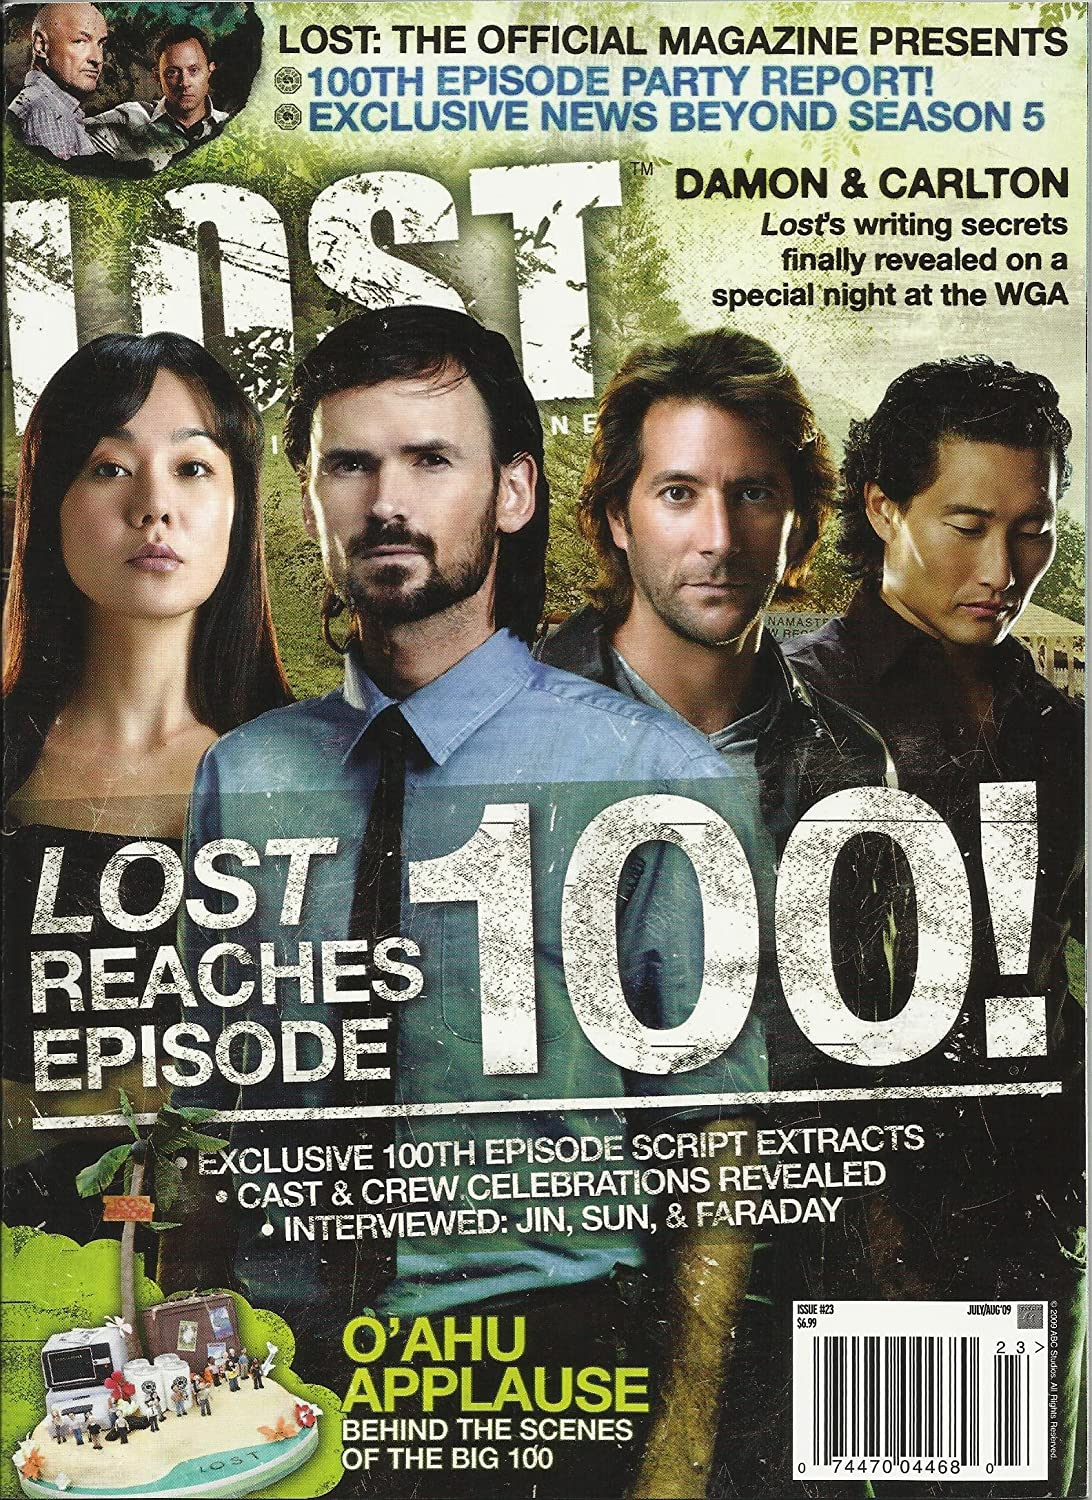 Lost Magazine Issue 23 July/August 2009 featuring exclusives